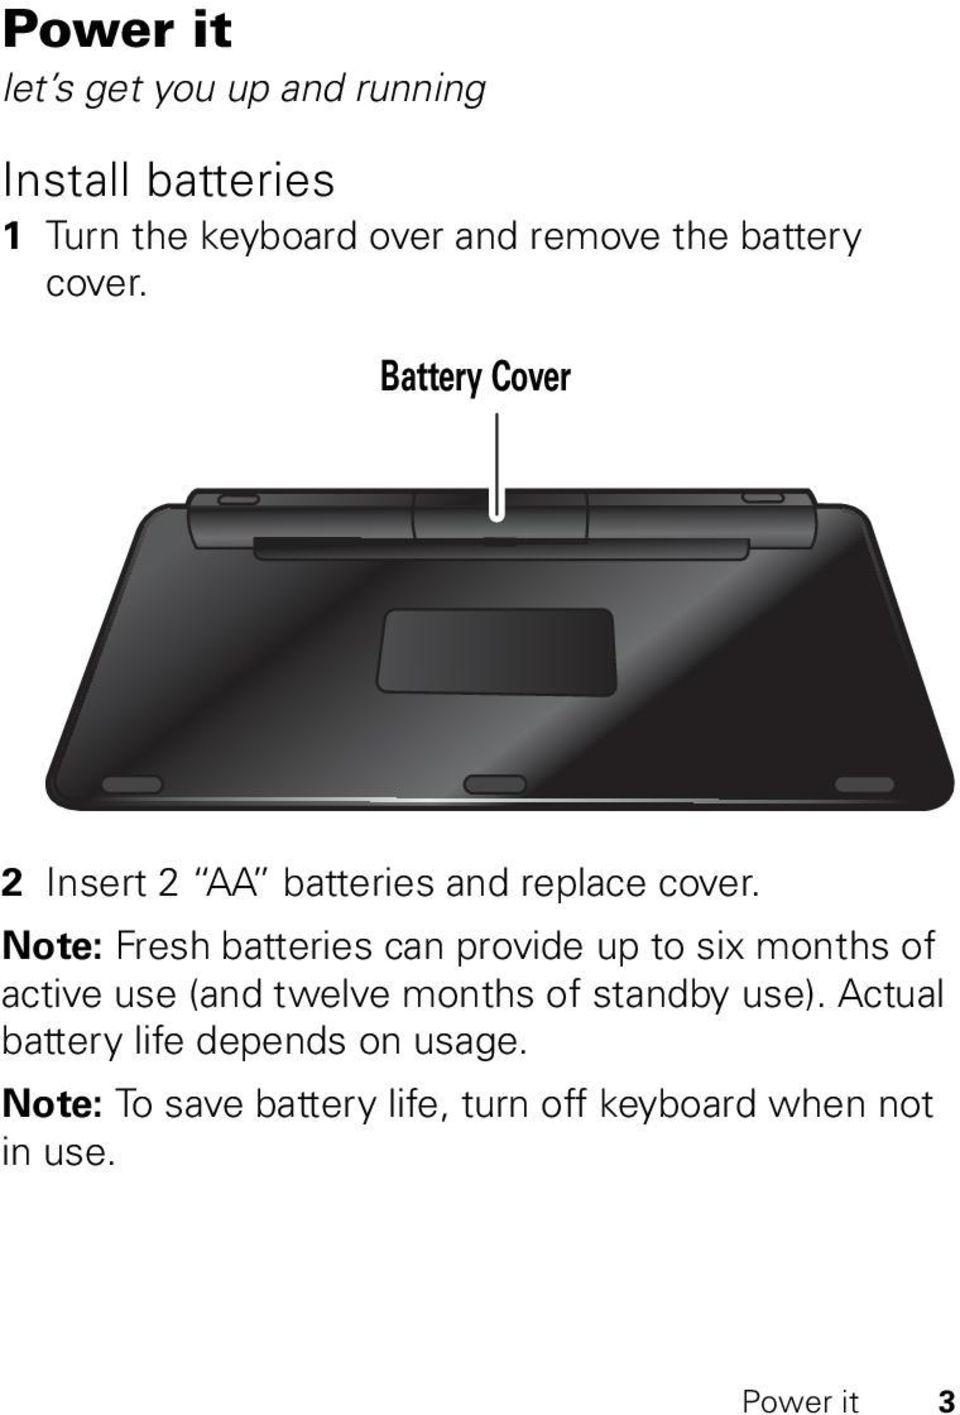 Note: Fresh batteries can provide up to six months of active use (and twelve months of standby